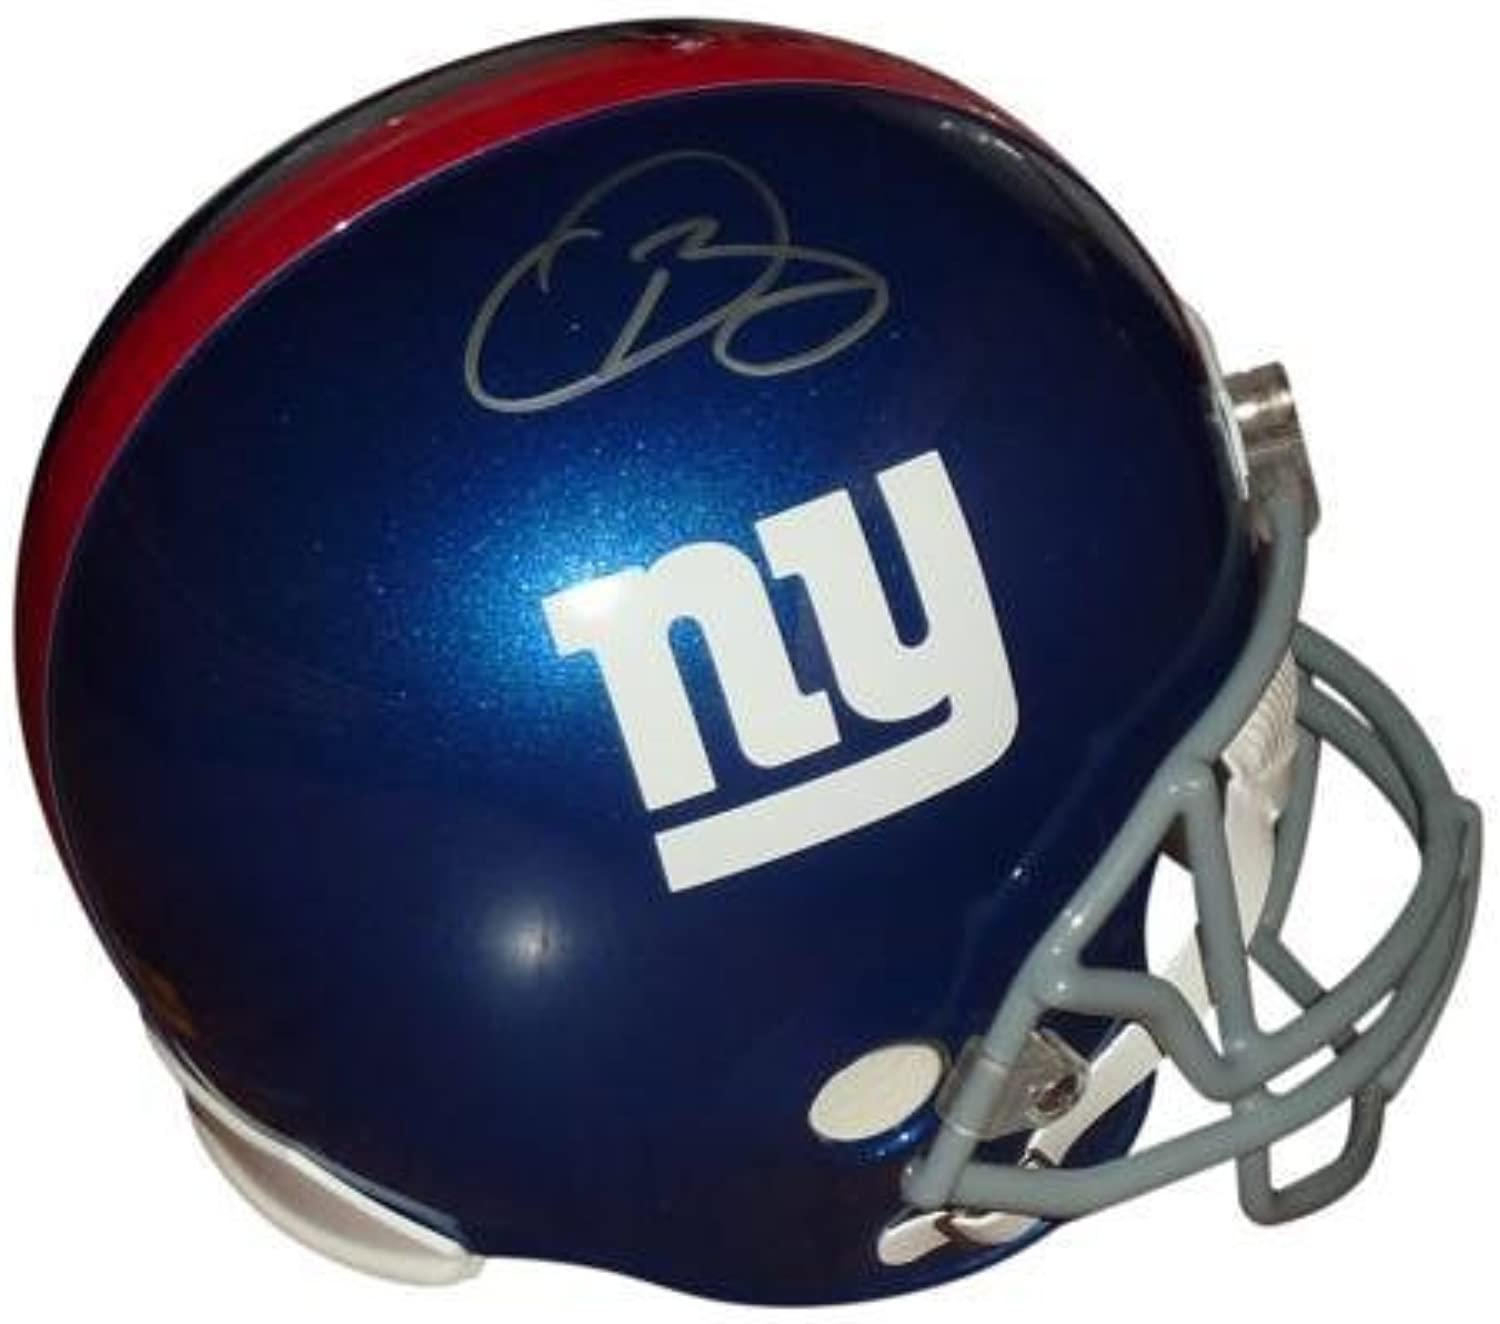 Odell Beckham Jr. Autographed Helmet  Deluxe Full Size Replica  Autographed NFL Helmets